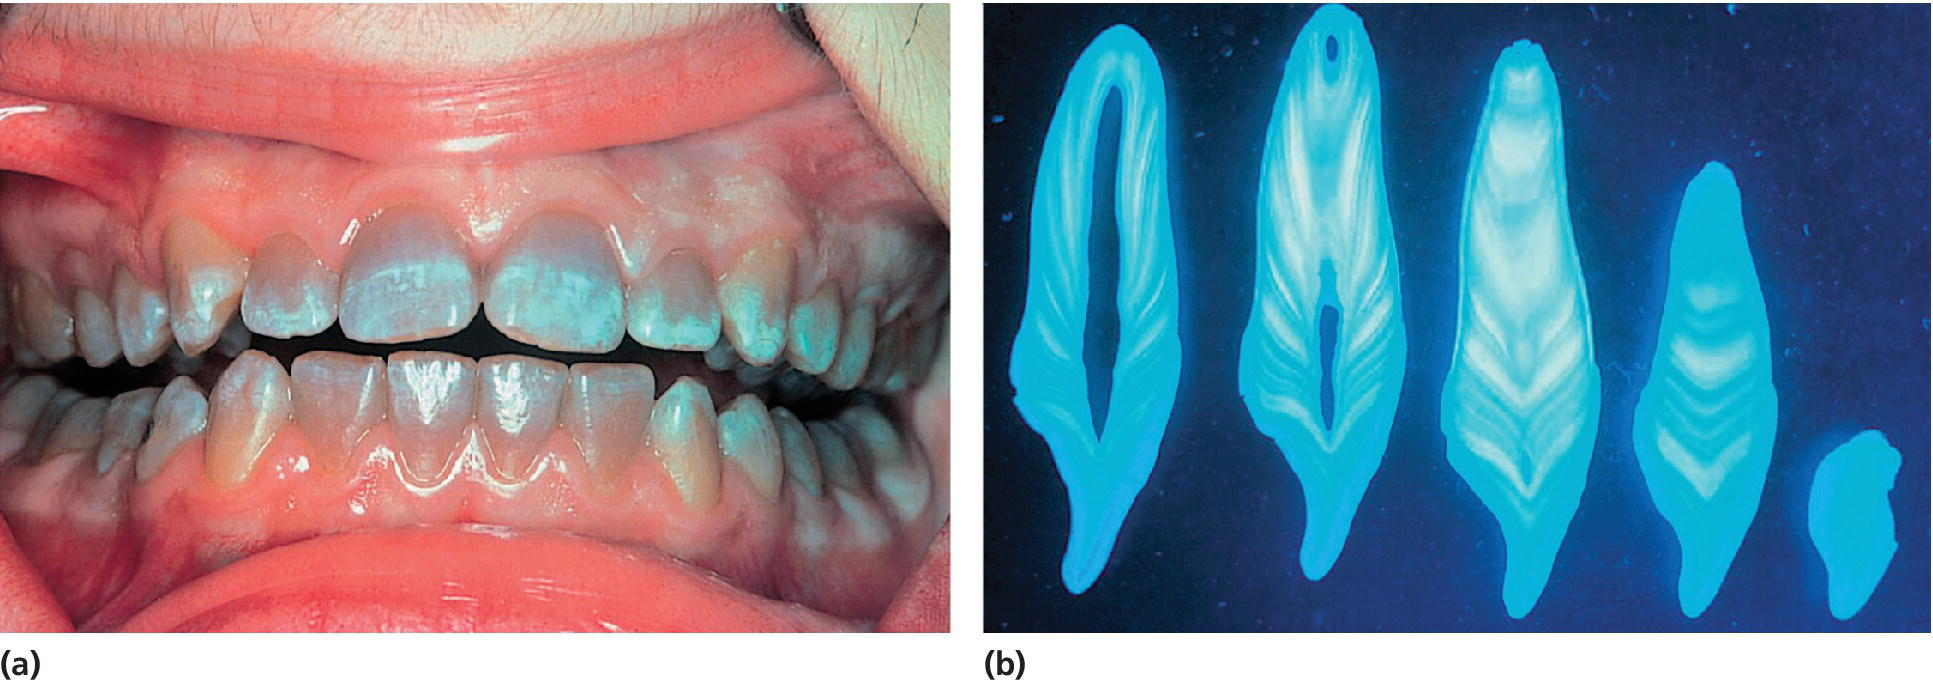 2 Photos of teeth of a 14-year-old girl exhibiting tetracycline stains (left) and a screen capture of histologic sections of tooth illustrating bands of tetracycline staining (right).